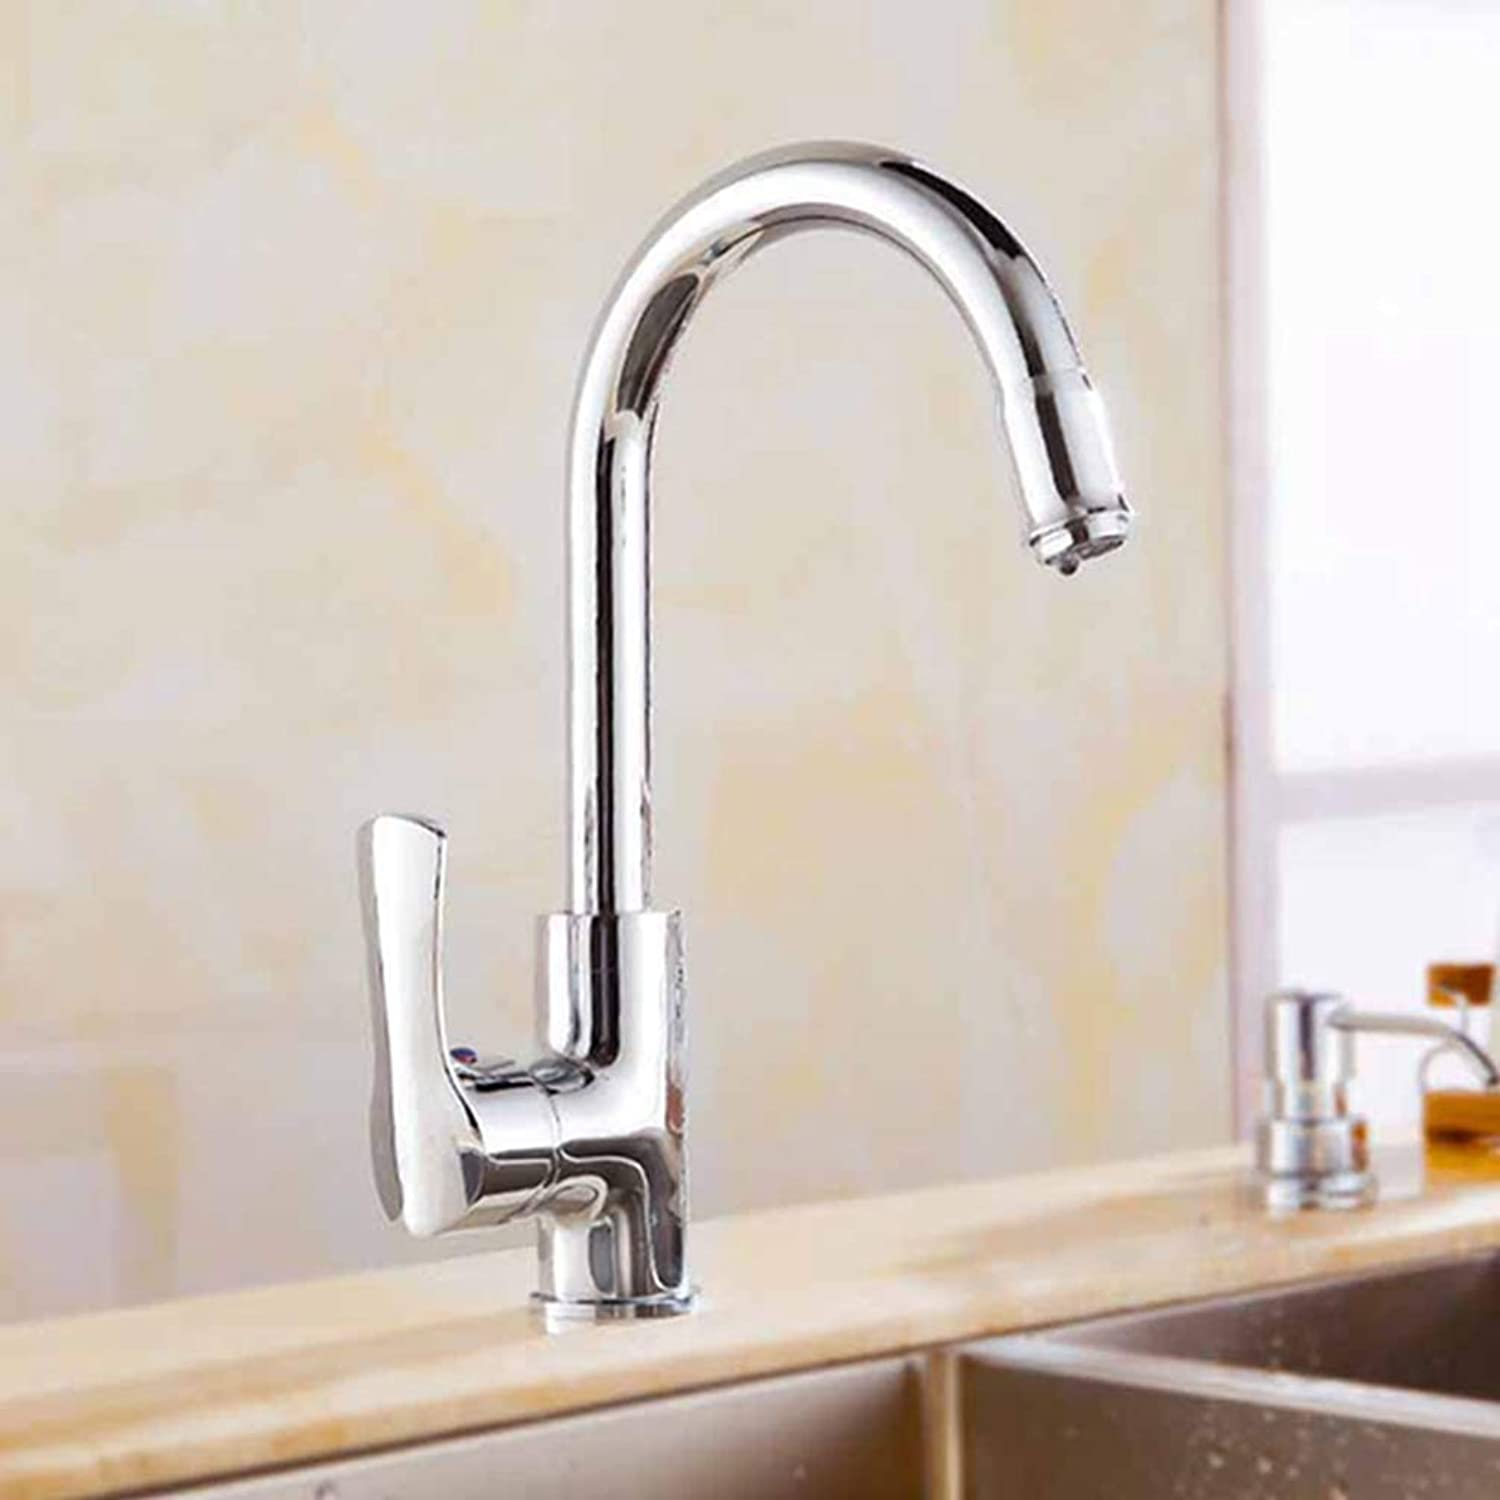 FZHLR Kitchen Faucet Cold and Hot Water Chrome∕gold∕pink gold Brass Kitchen Sink Faucet Single Handle Deck Mounted Mixer Taps 360 Swivel,Chrome